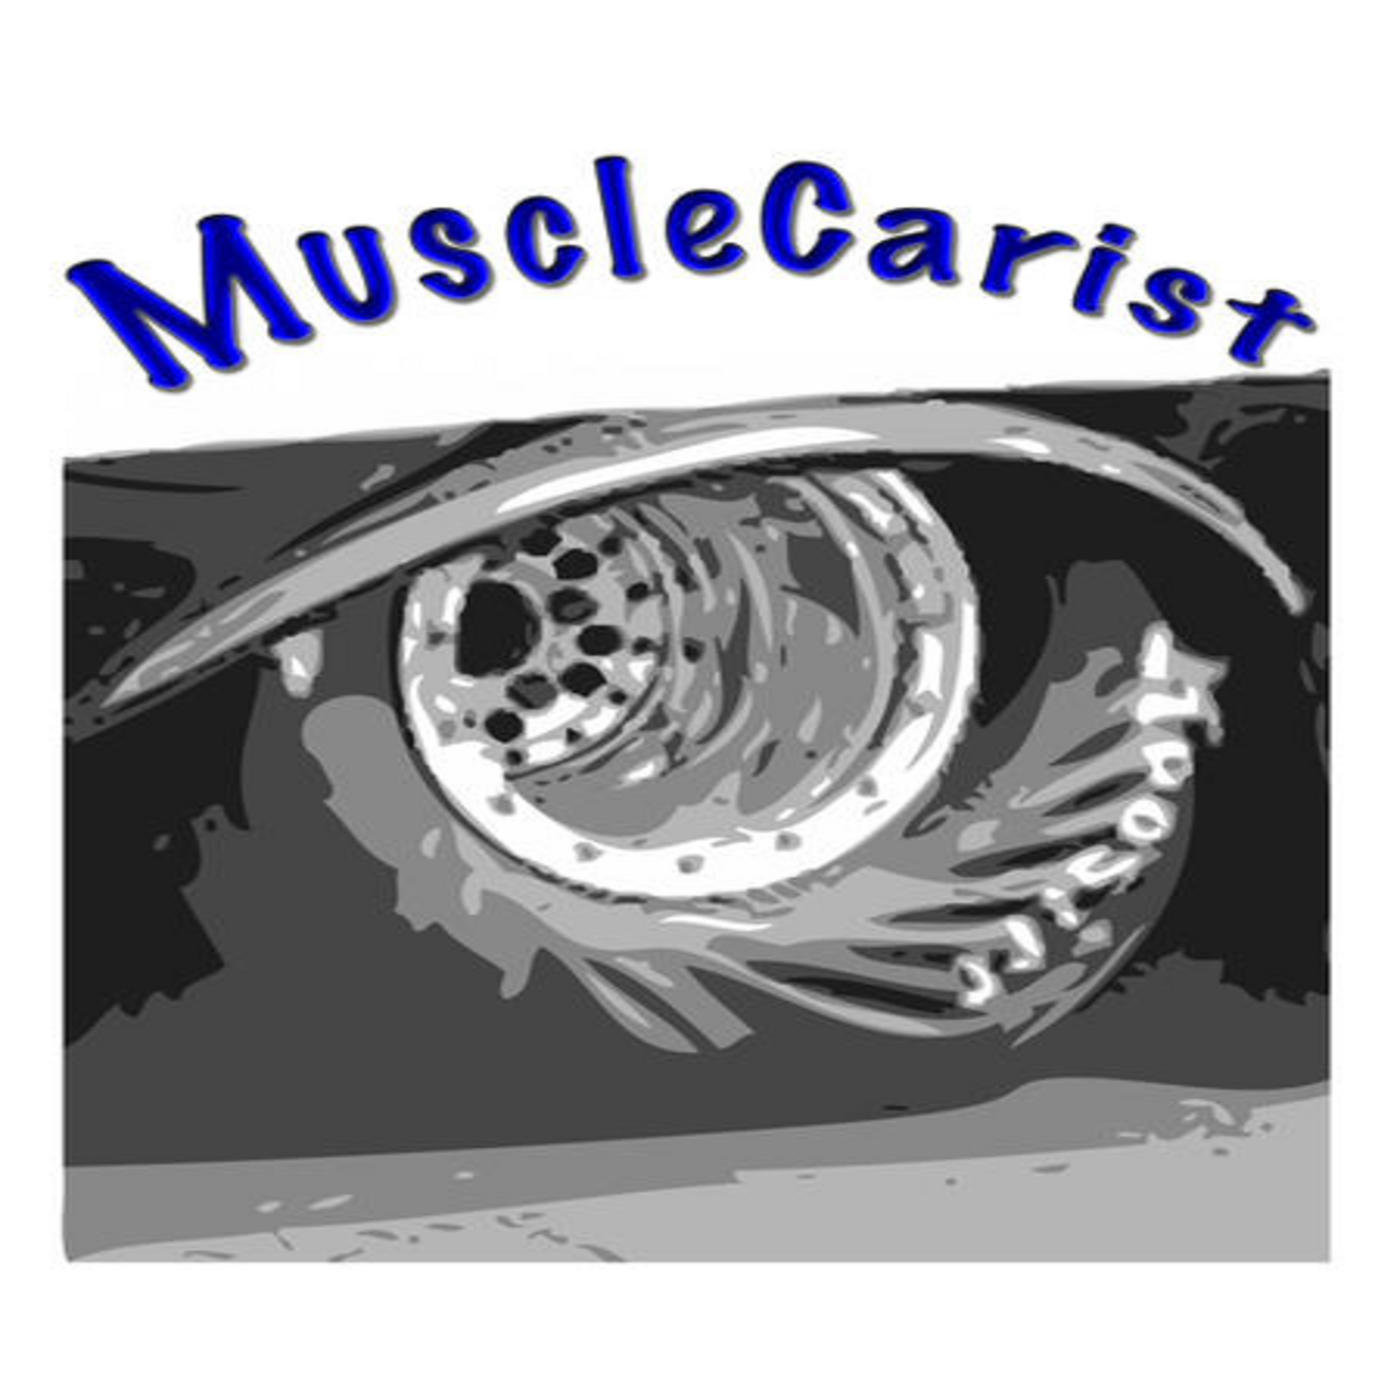 1-Muscle Car Definition